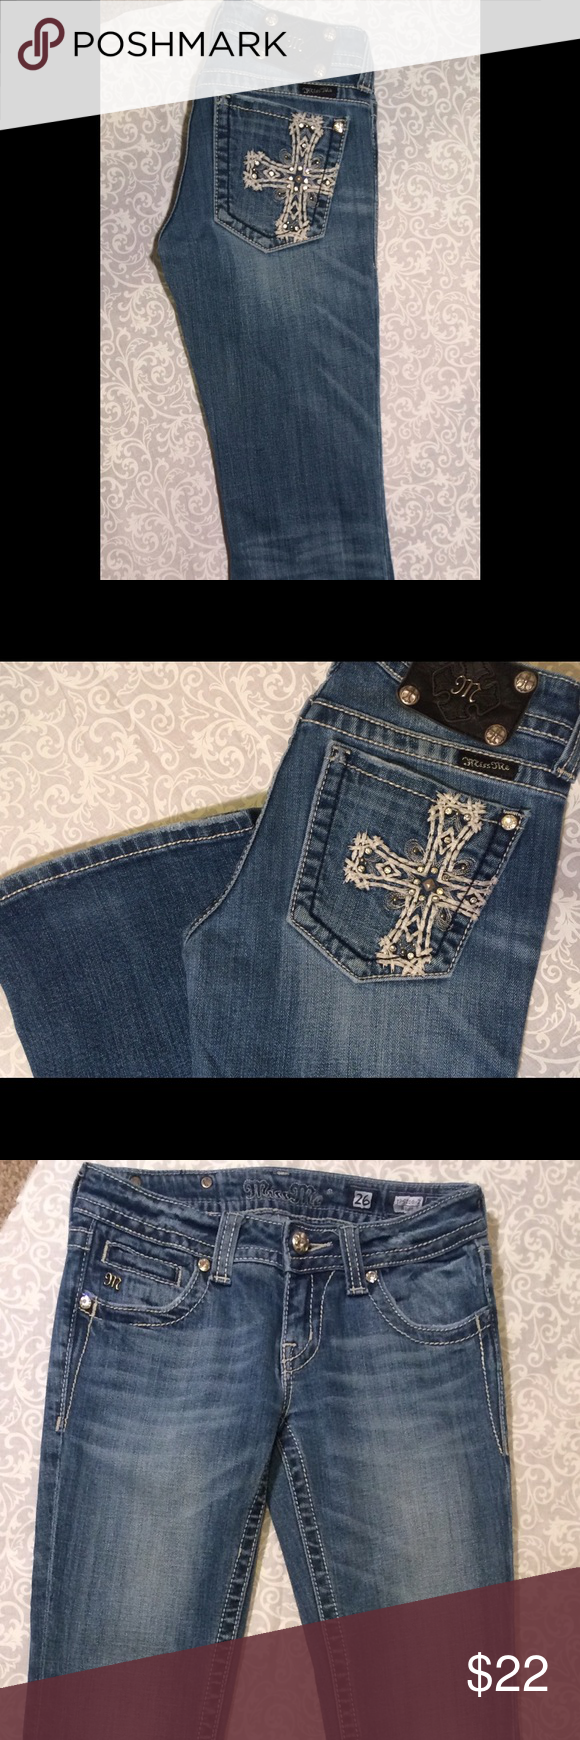 "Miss Me bootcut Size 26. Cross Bling Miss Me bootcut Size 26. 32"" inseam Cross Bling.  Minimal wear.  Overall great condition Miss Me Jeans Boot Cut"